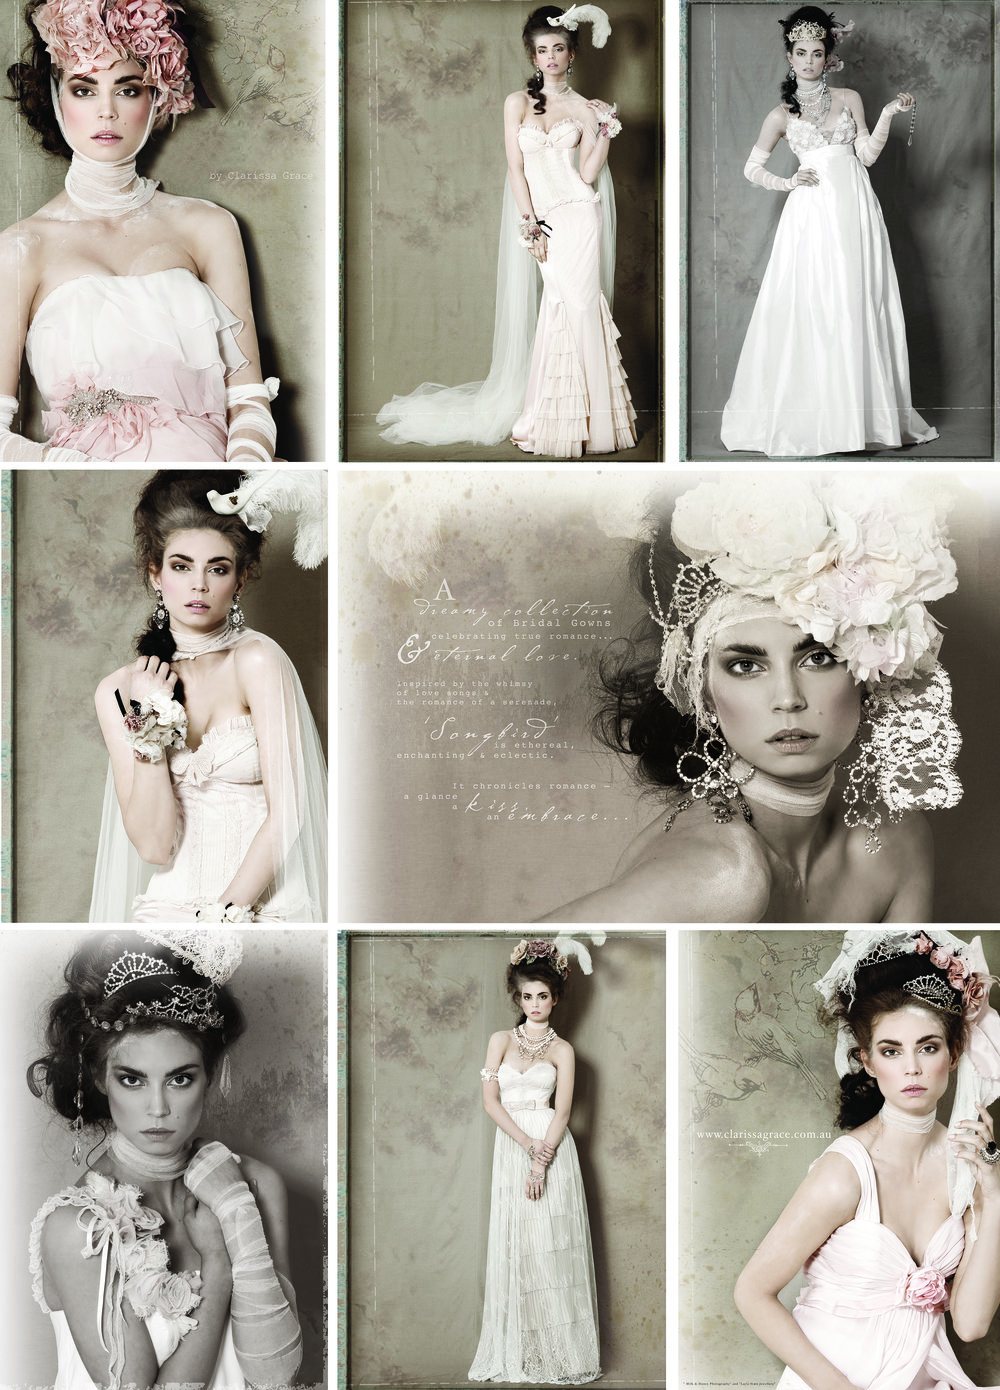 {Image credit: Gowns designed by Clarissa Grace Couture.}